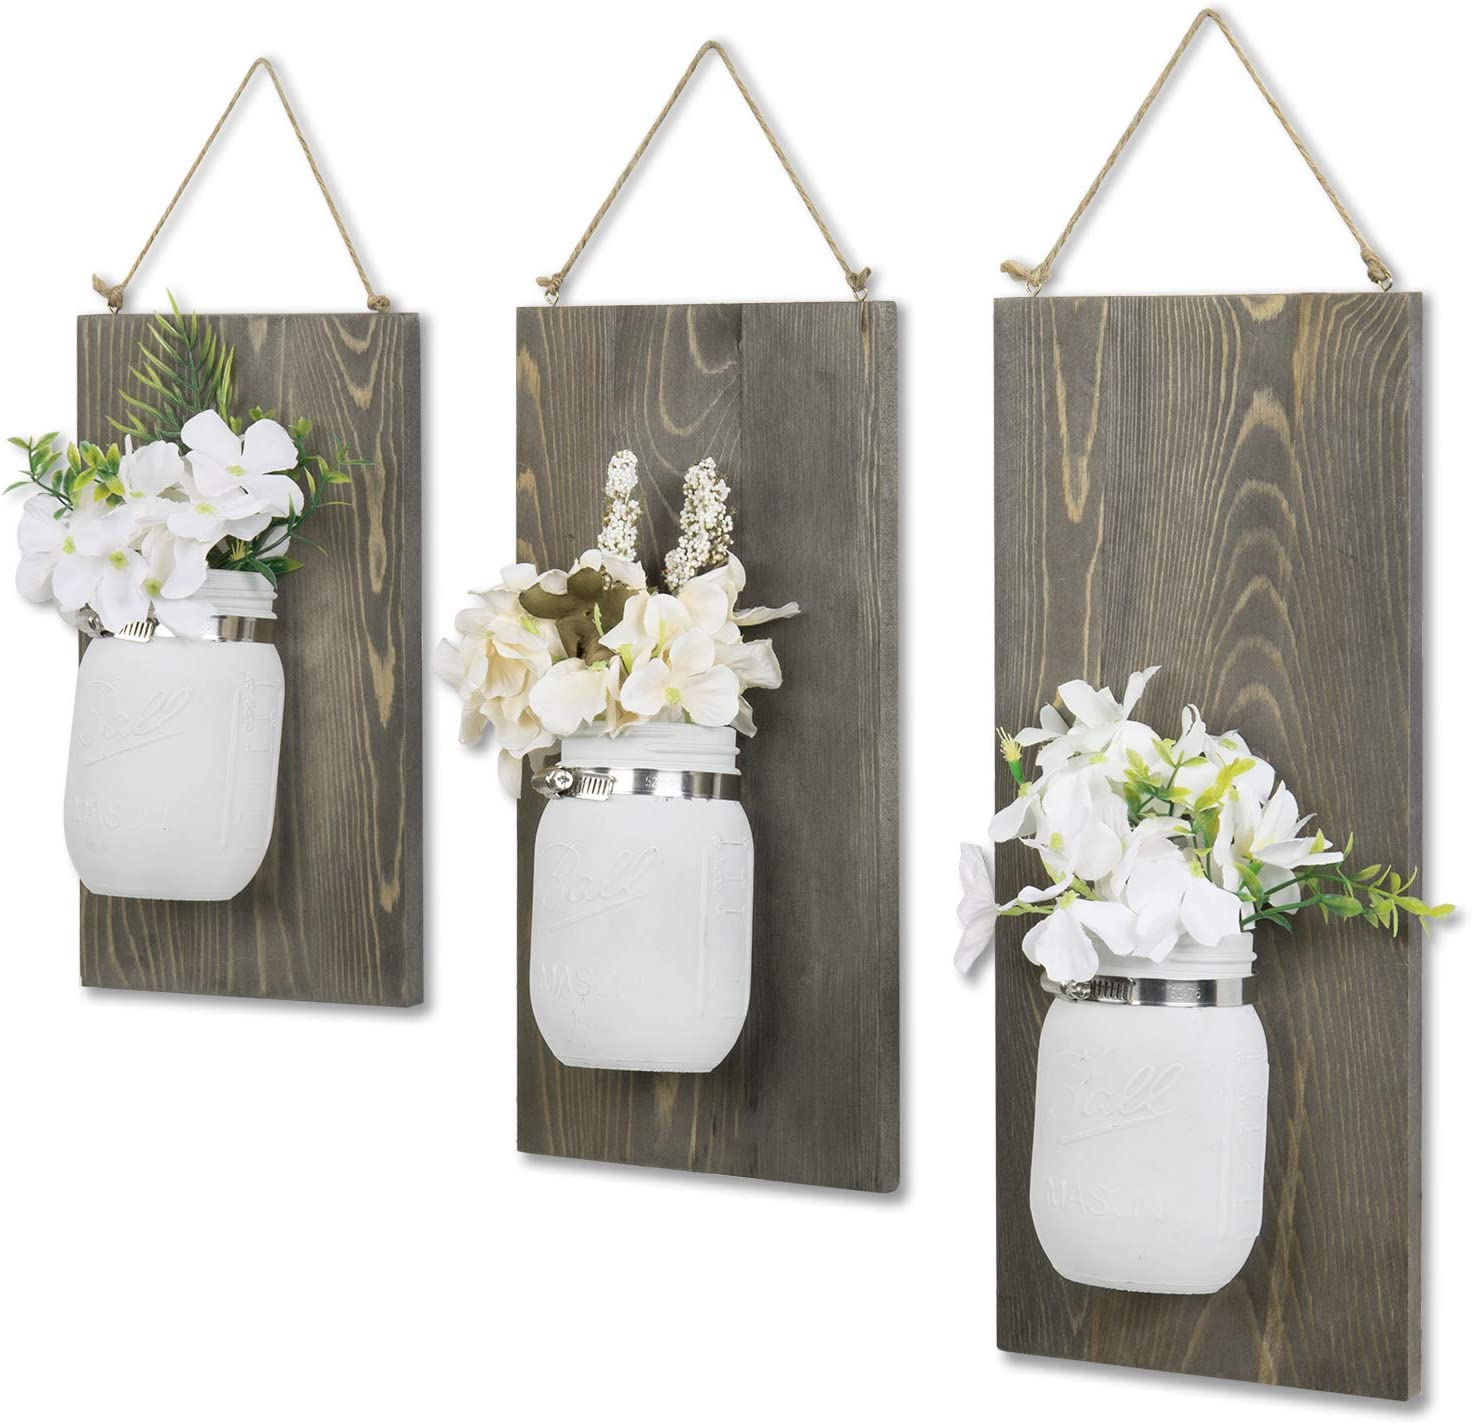 MyGift Rustic Style Wall Mounted White Glass Mason Jar & Gray Wood Planter Racks with Decorative Hanging Rope, Set of 3